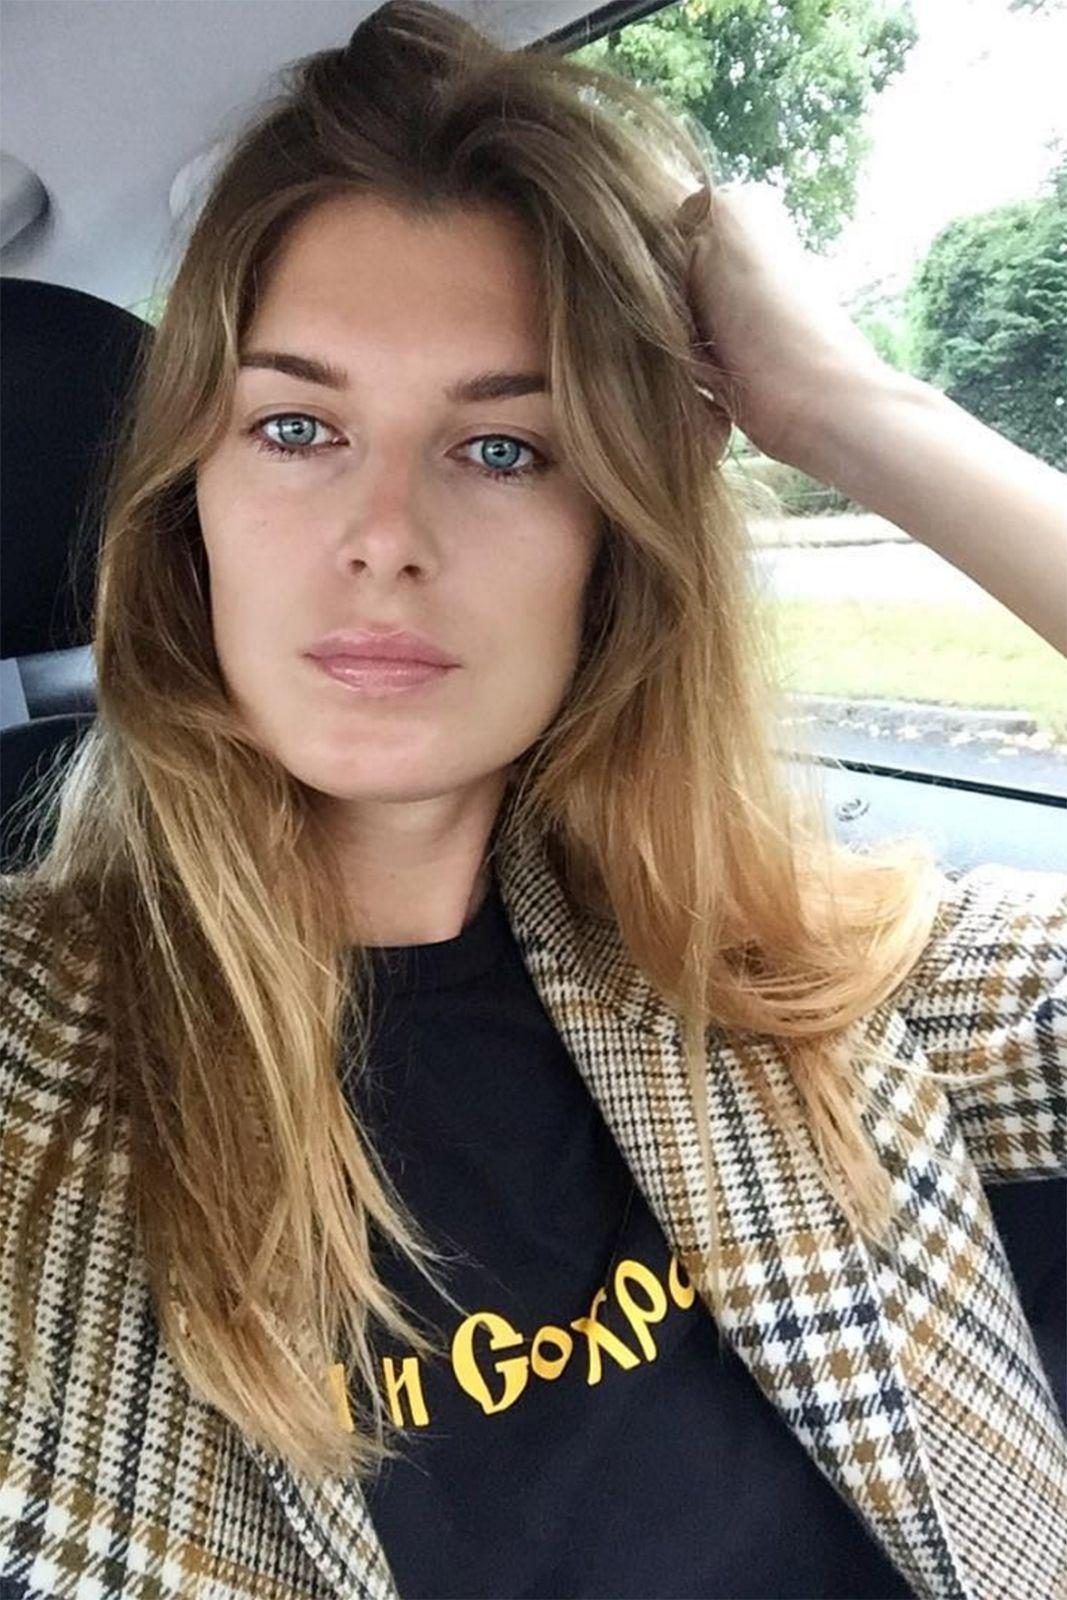 """<p><strong>The Soft Centre-Parting</strong></p> <p>If you're used to a side sweep, a centre parting can be pretty severe. Soften the severity by making the line less sharp and twist <span>your</span> hair up into a loose bun at night so when you take it down in the morning you're left with gorgeous, gentle waves that frame the face like stylist <a href=""""https://www.instagram.com/sgundelach/"""" rel=""""nofollow noopener"""" target=""""_blank"""" data-ylk=""""slk:Stephanie Gundelach"""" class=""""link rapid-noclick-resp"""">Stephanie Gundelach</a>.</p> <span class=""""copyright"""">Photo: Via @sgundelach</span>"""